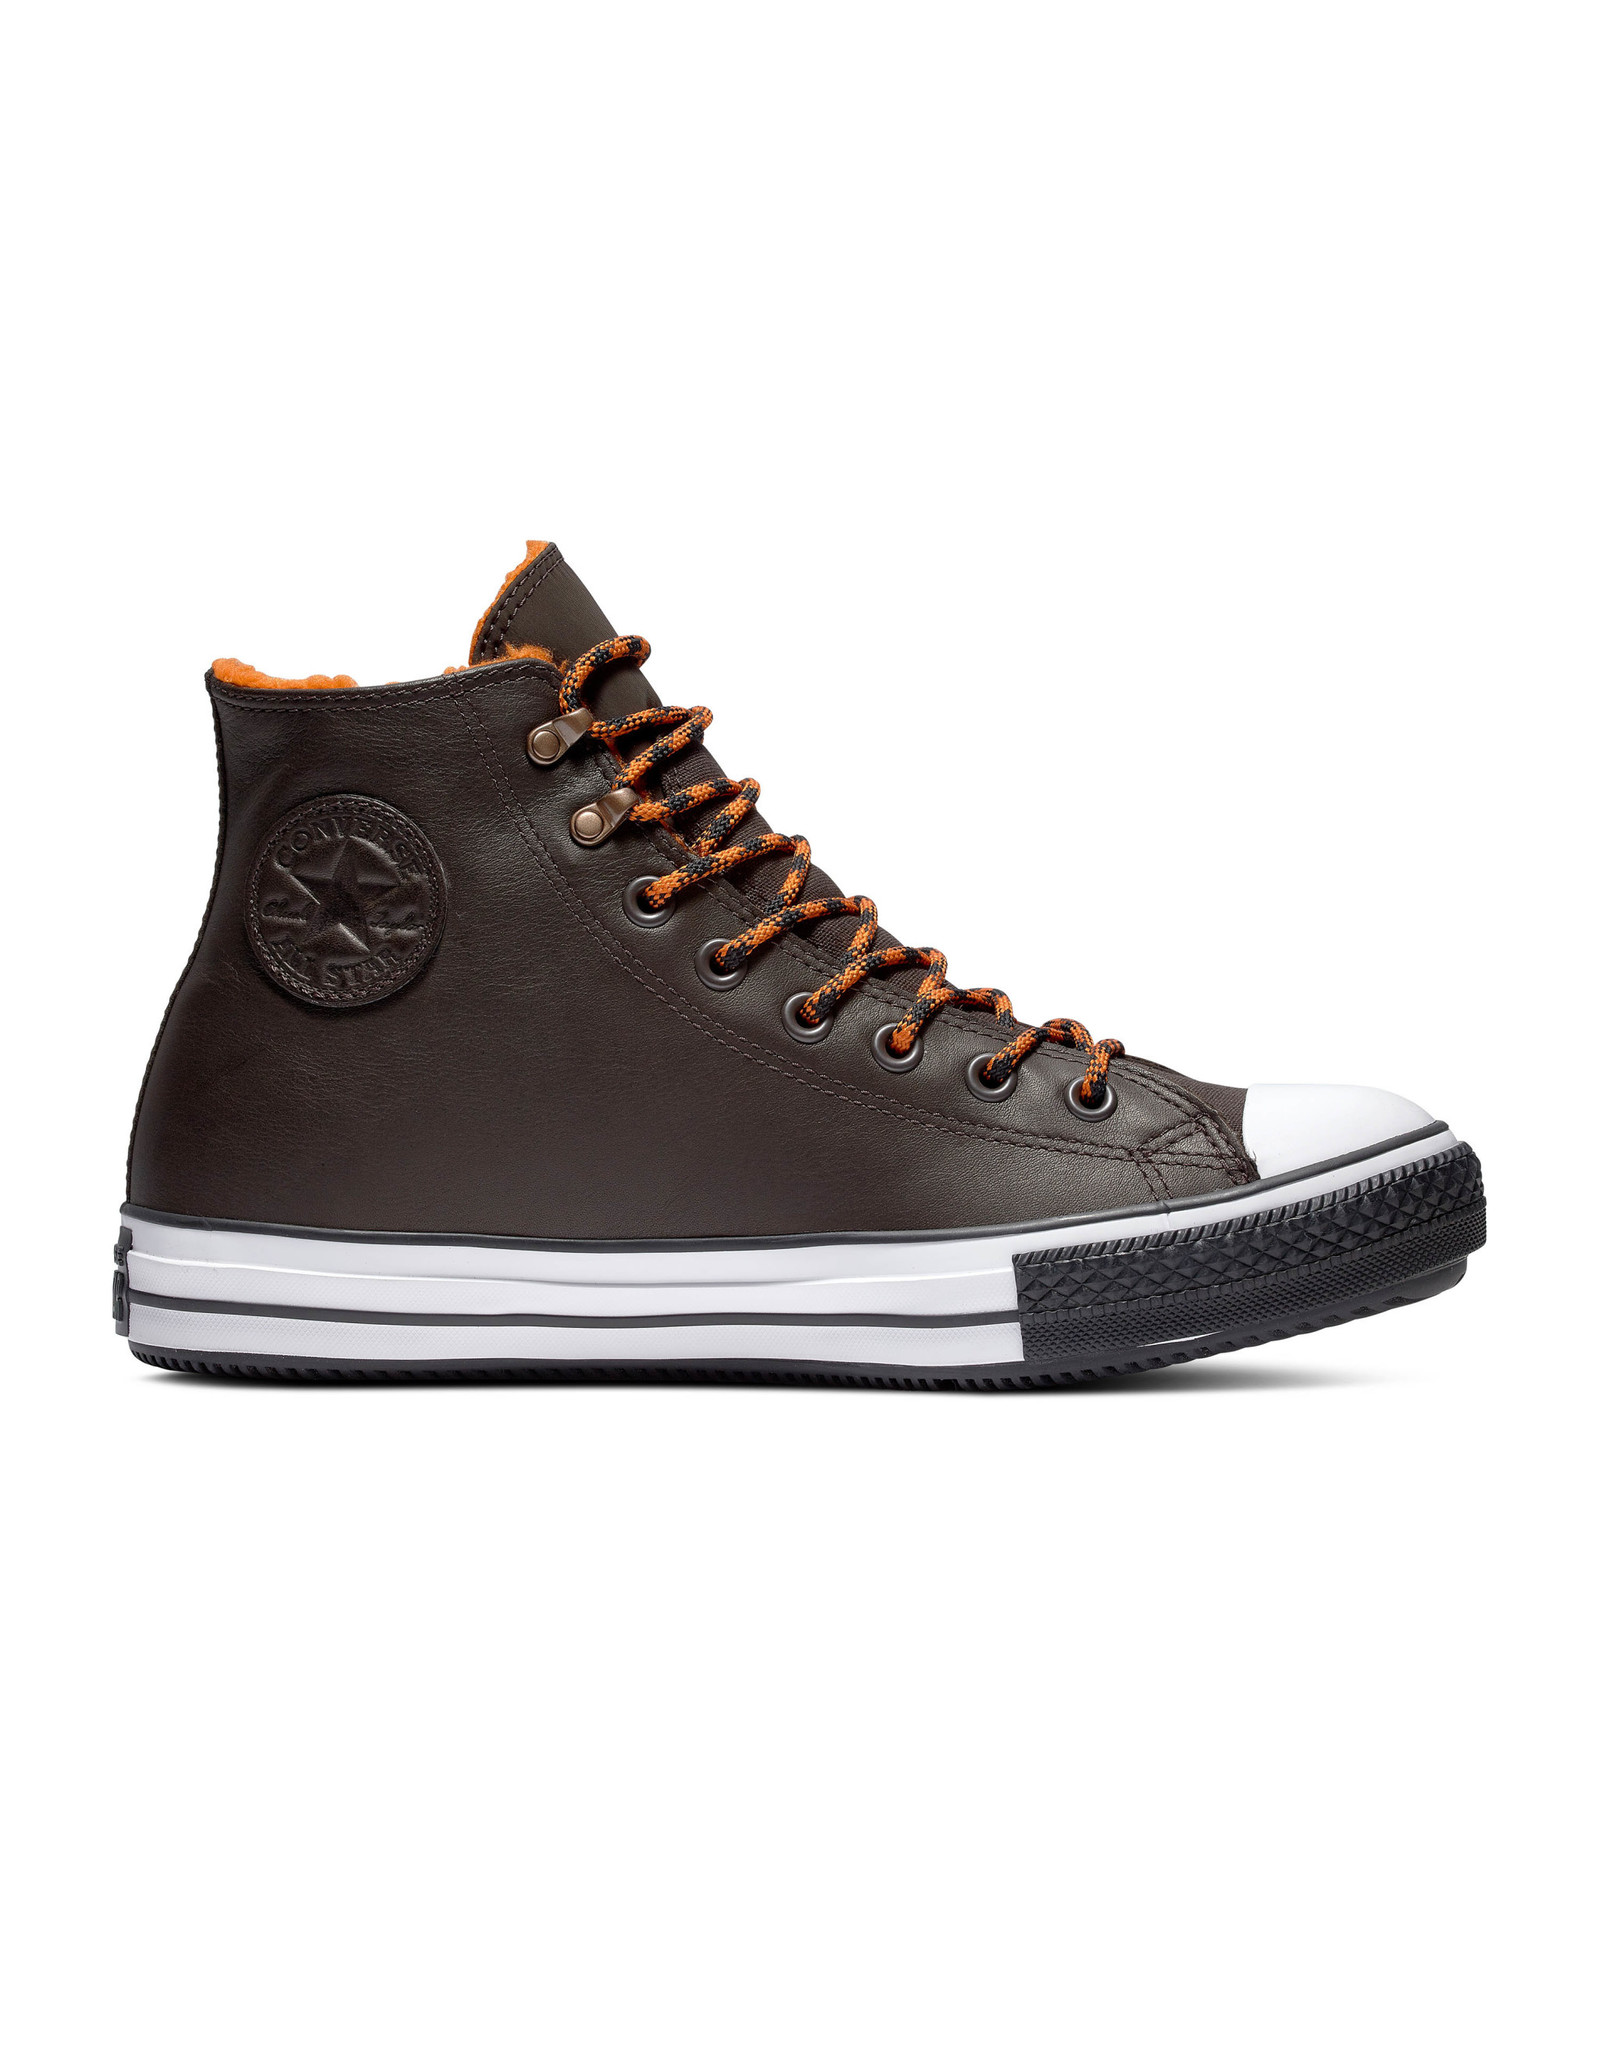 CONVERSE CHUCK TAYLOR ALL STAR WINTER HI CUIR VELVET BROWN/CAMPFIRE CC19VE-165933C